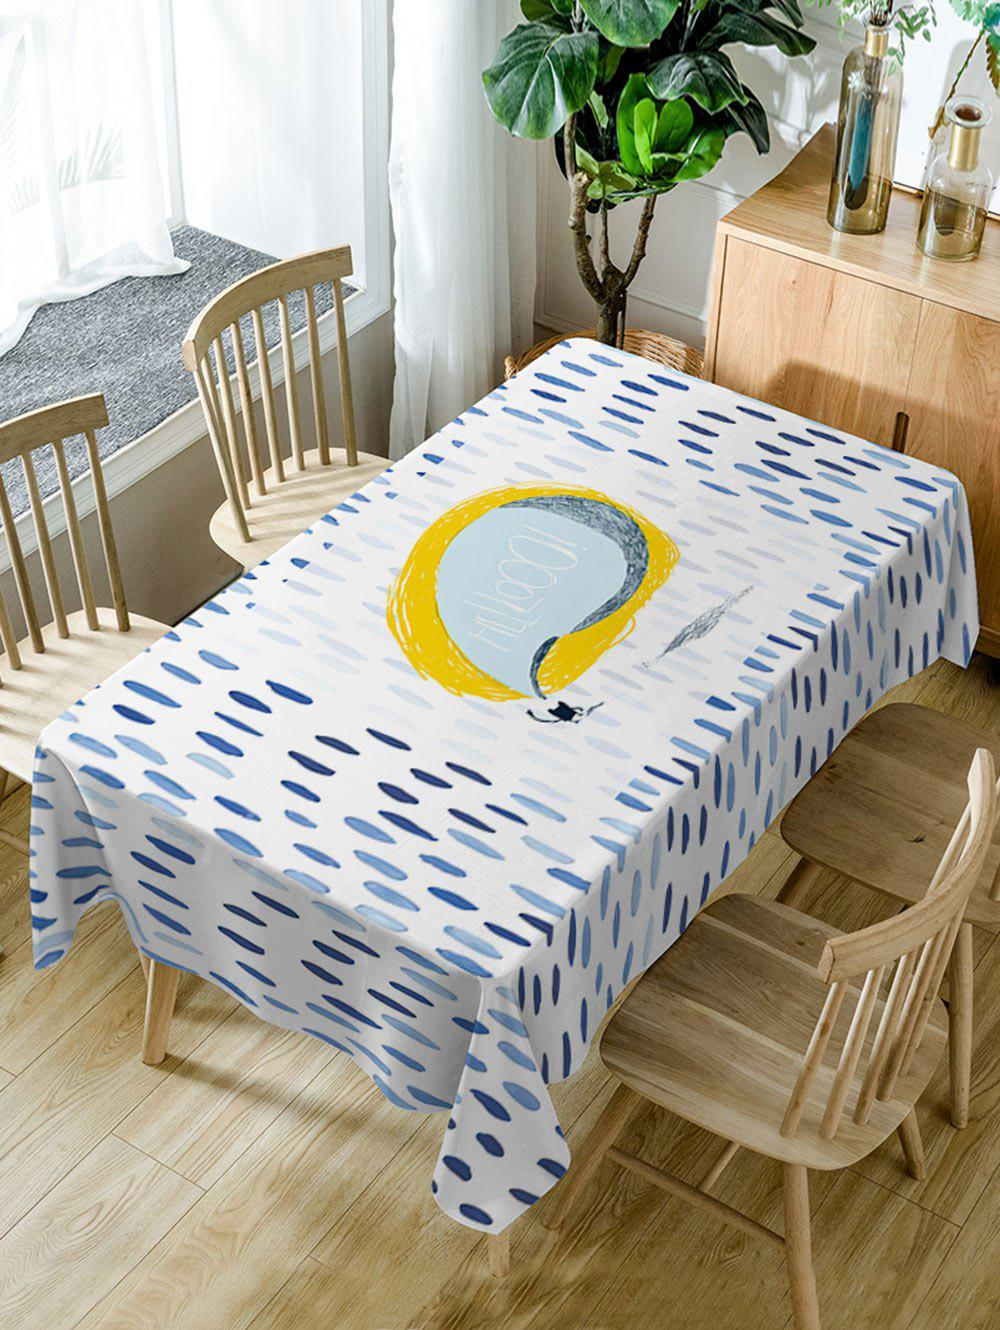 Rain Pattern Fabric Waterproof Table Cloth - COLORMIX W54 INCH * L54 INCH